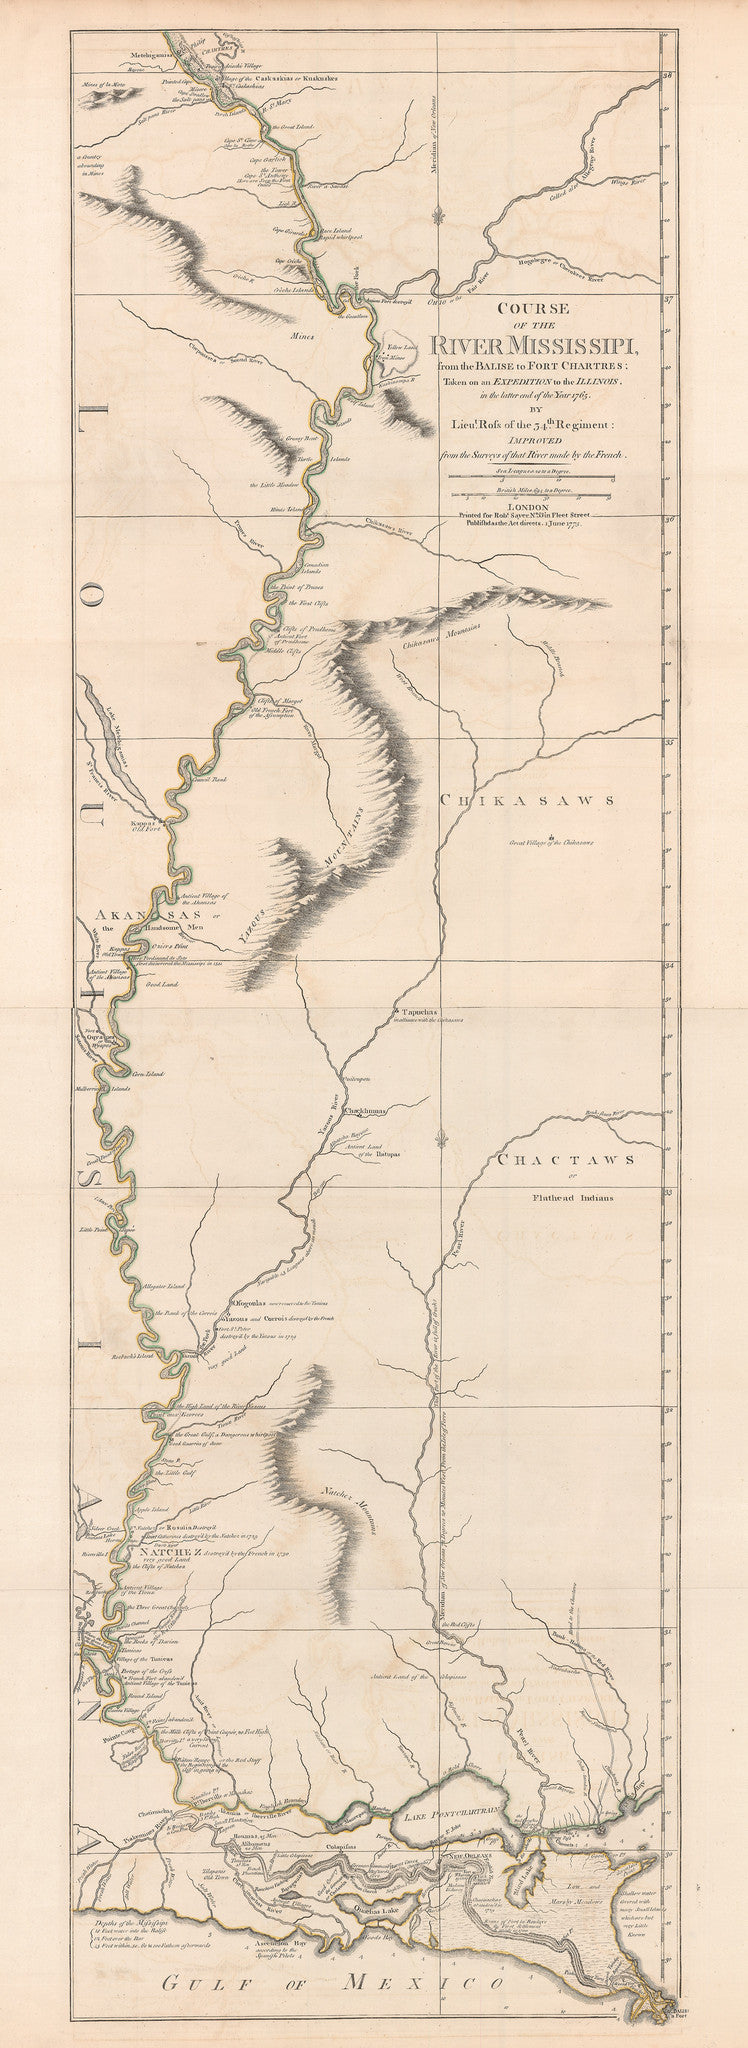 1775 Course of the River Mississippi from the Balise to Fort Chartres: Taken on an expedition to the Illinois in the latter end of the Year 1765.